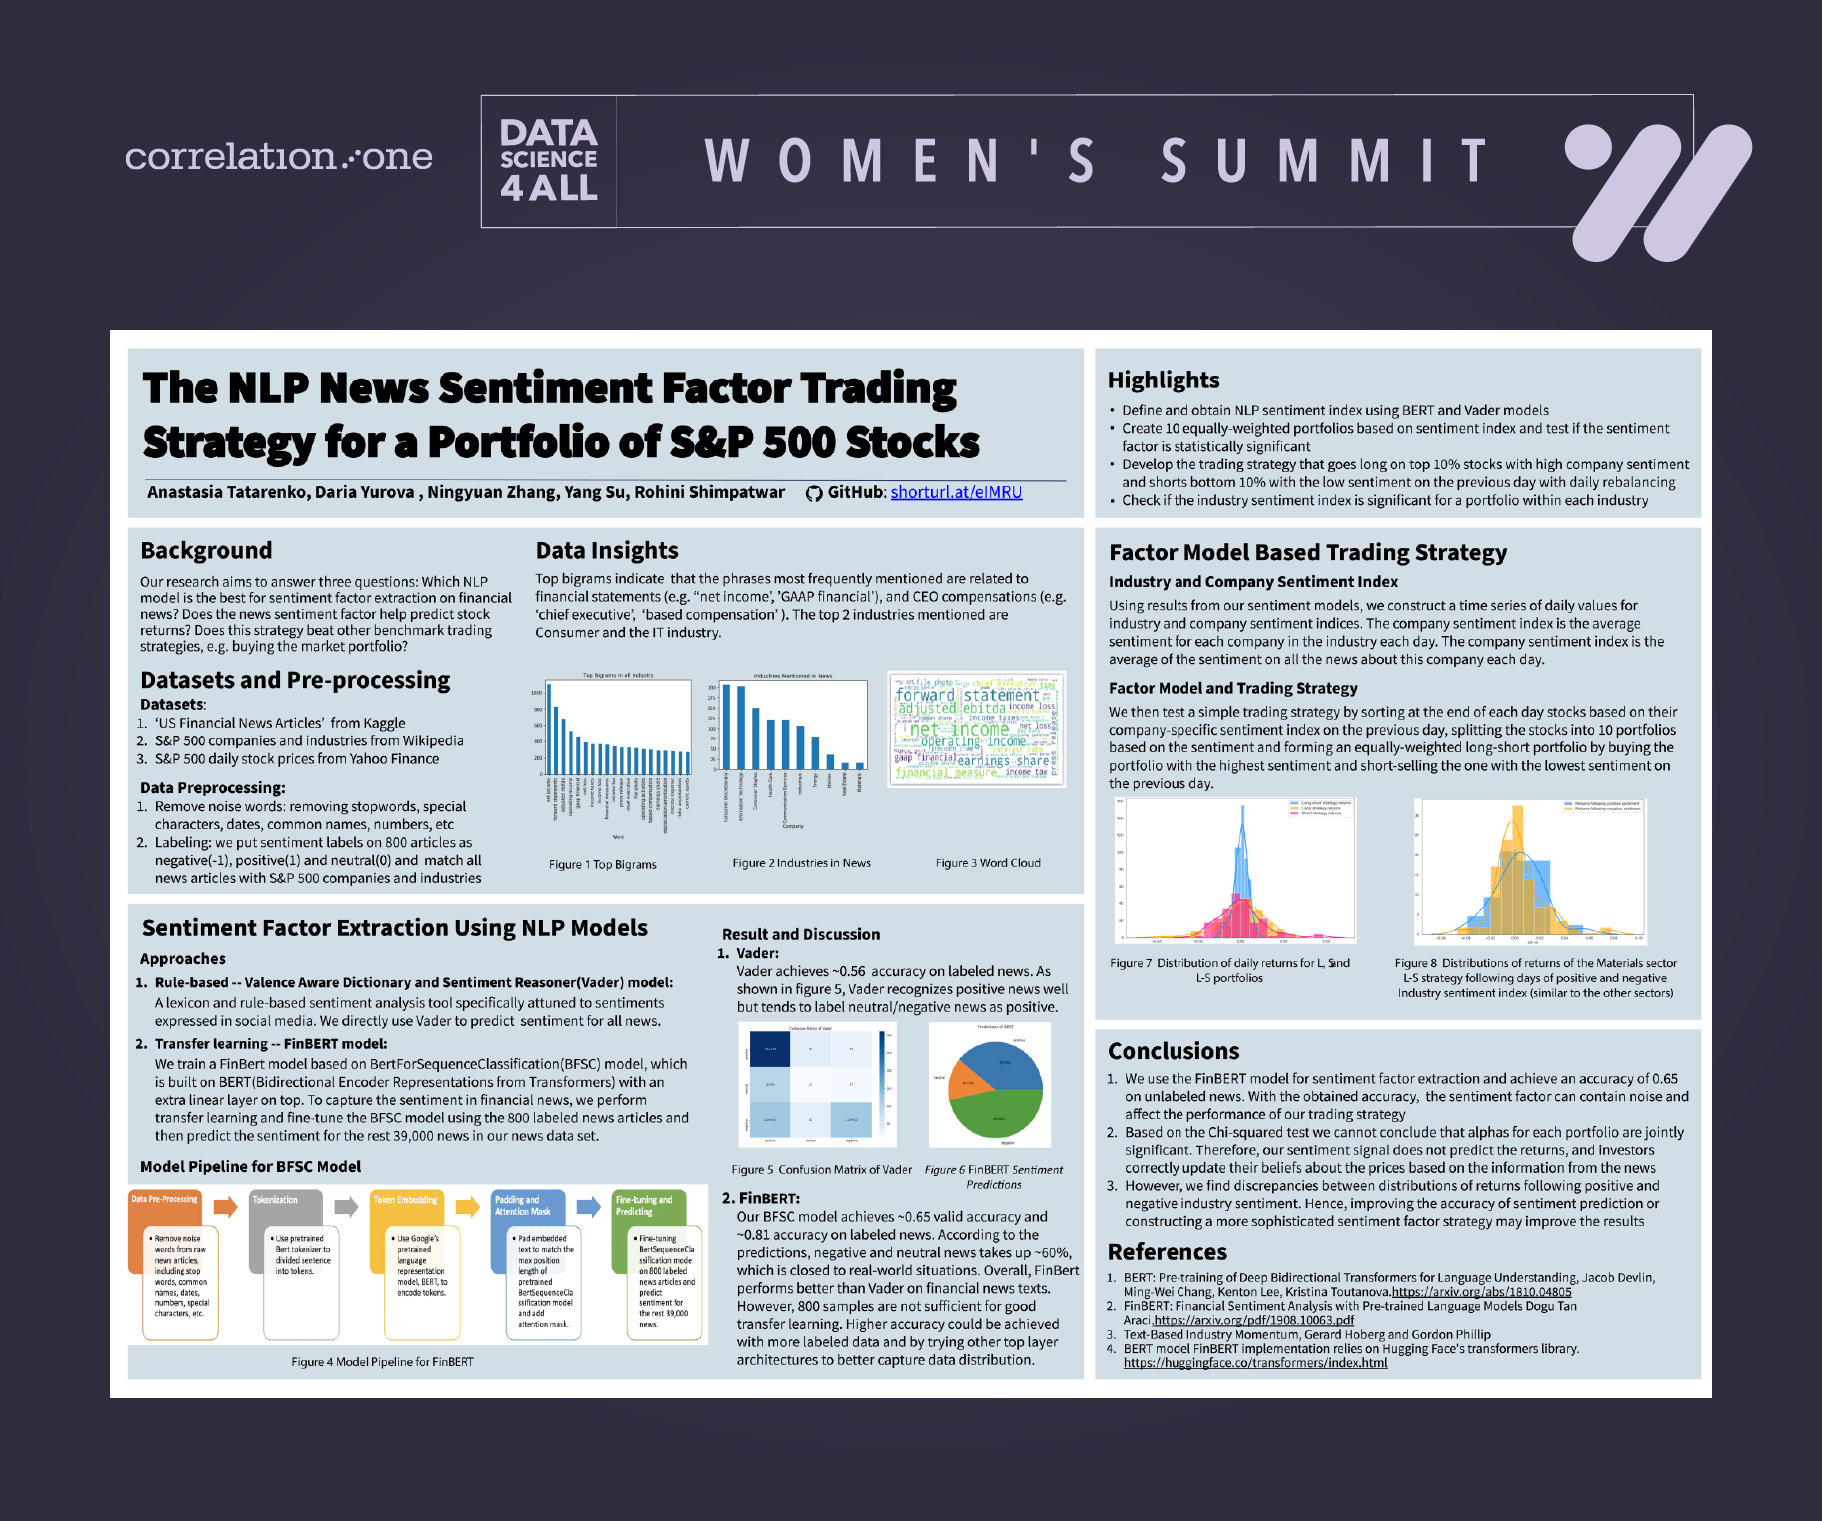 Women in data science. Correlation One Data Science for All: Women Summit, mentees' presentation of their Capstone projects, showcase their skills by walking the audience through their data analysis, their hypotheses, their conclusions, and their technical solutions.